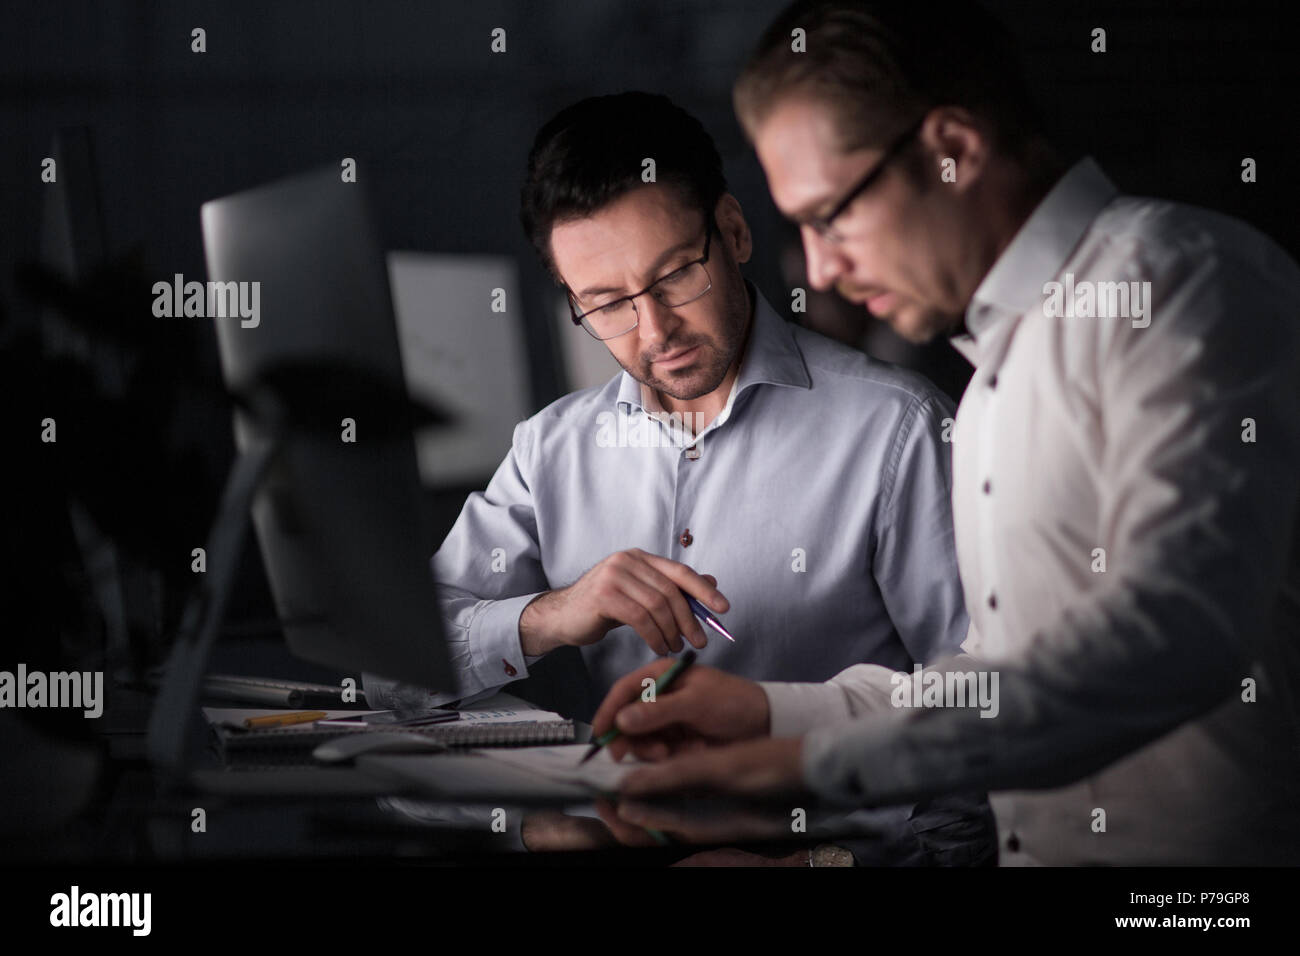 colleagues working with documents in the evening. - Stock Image